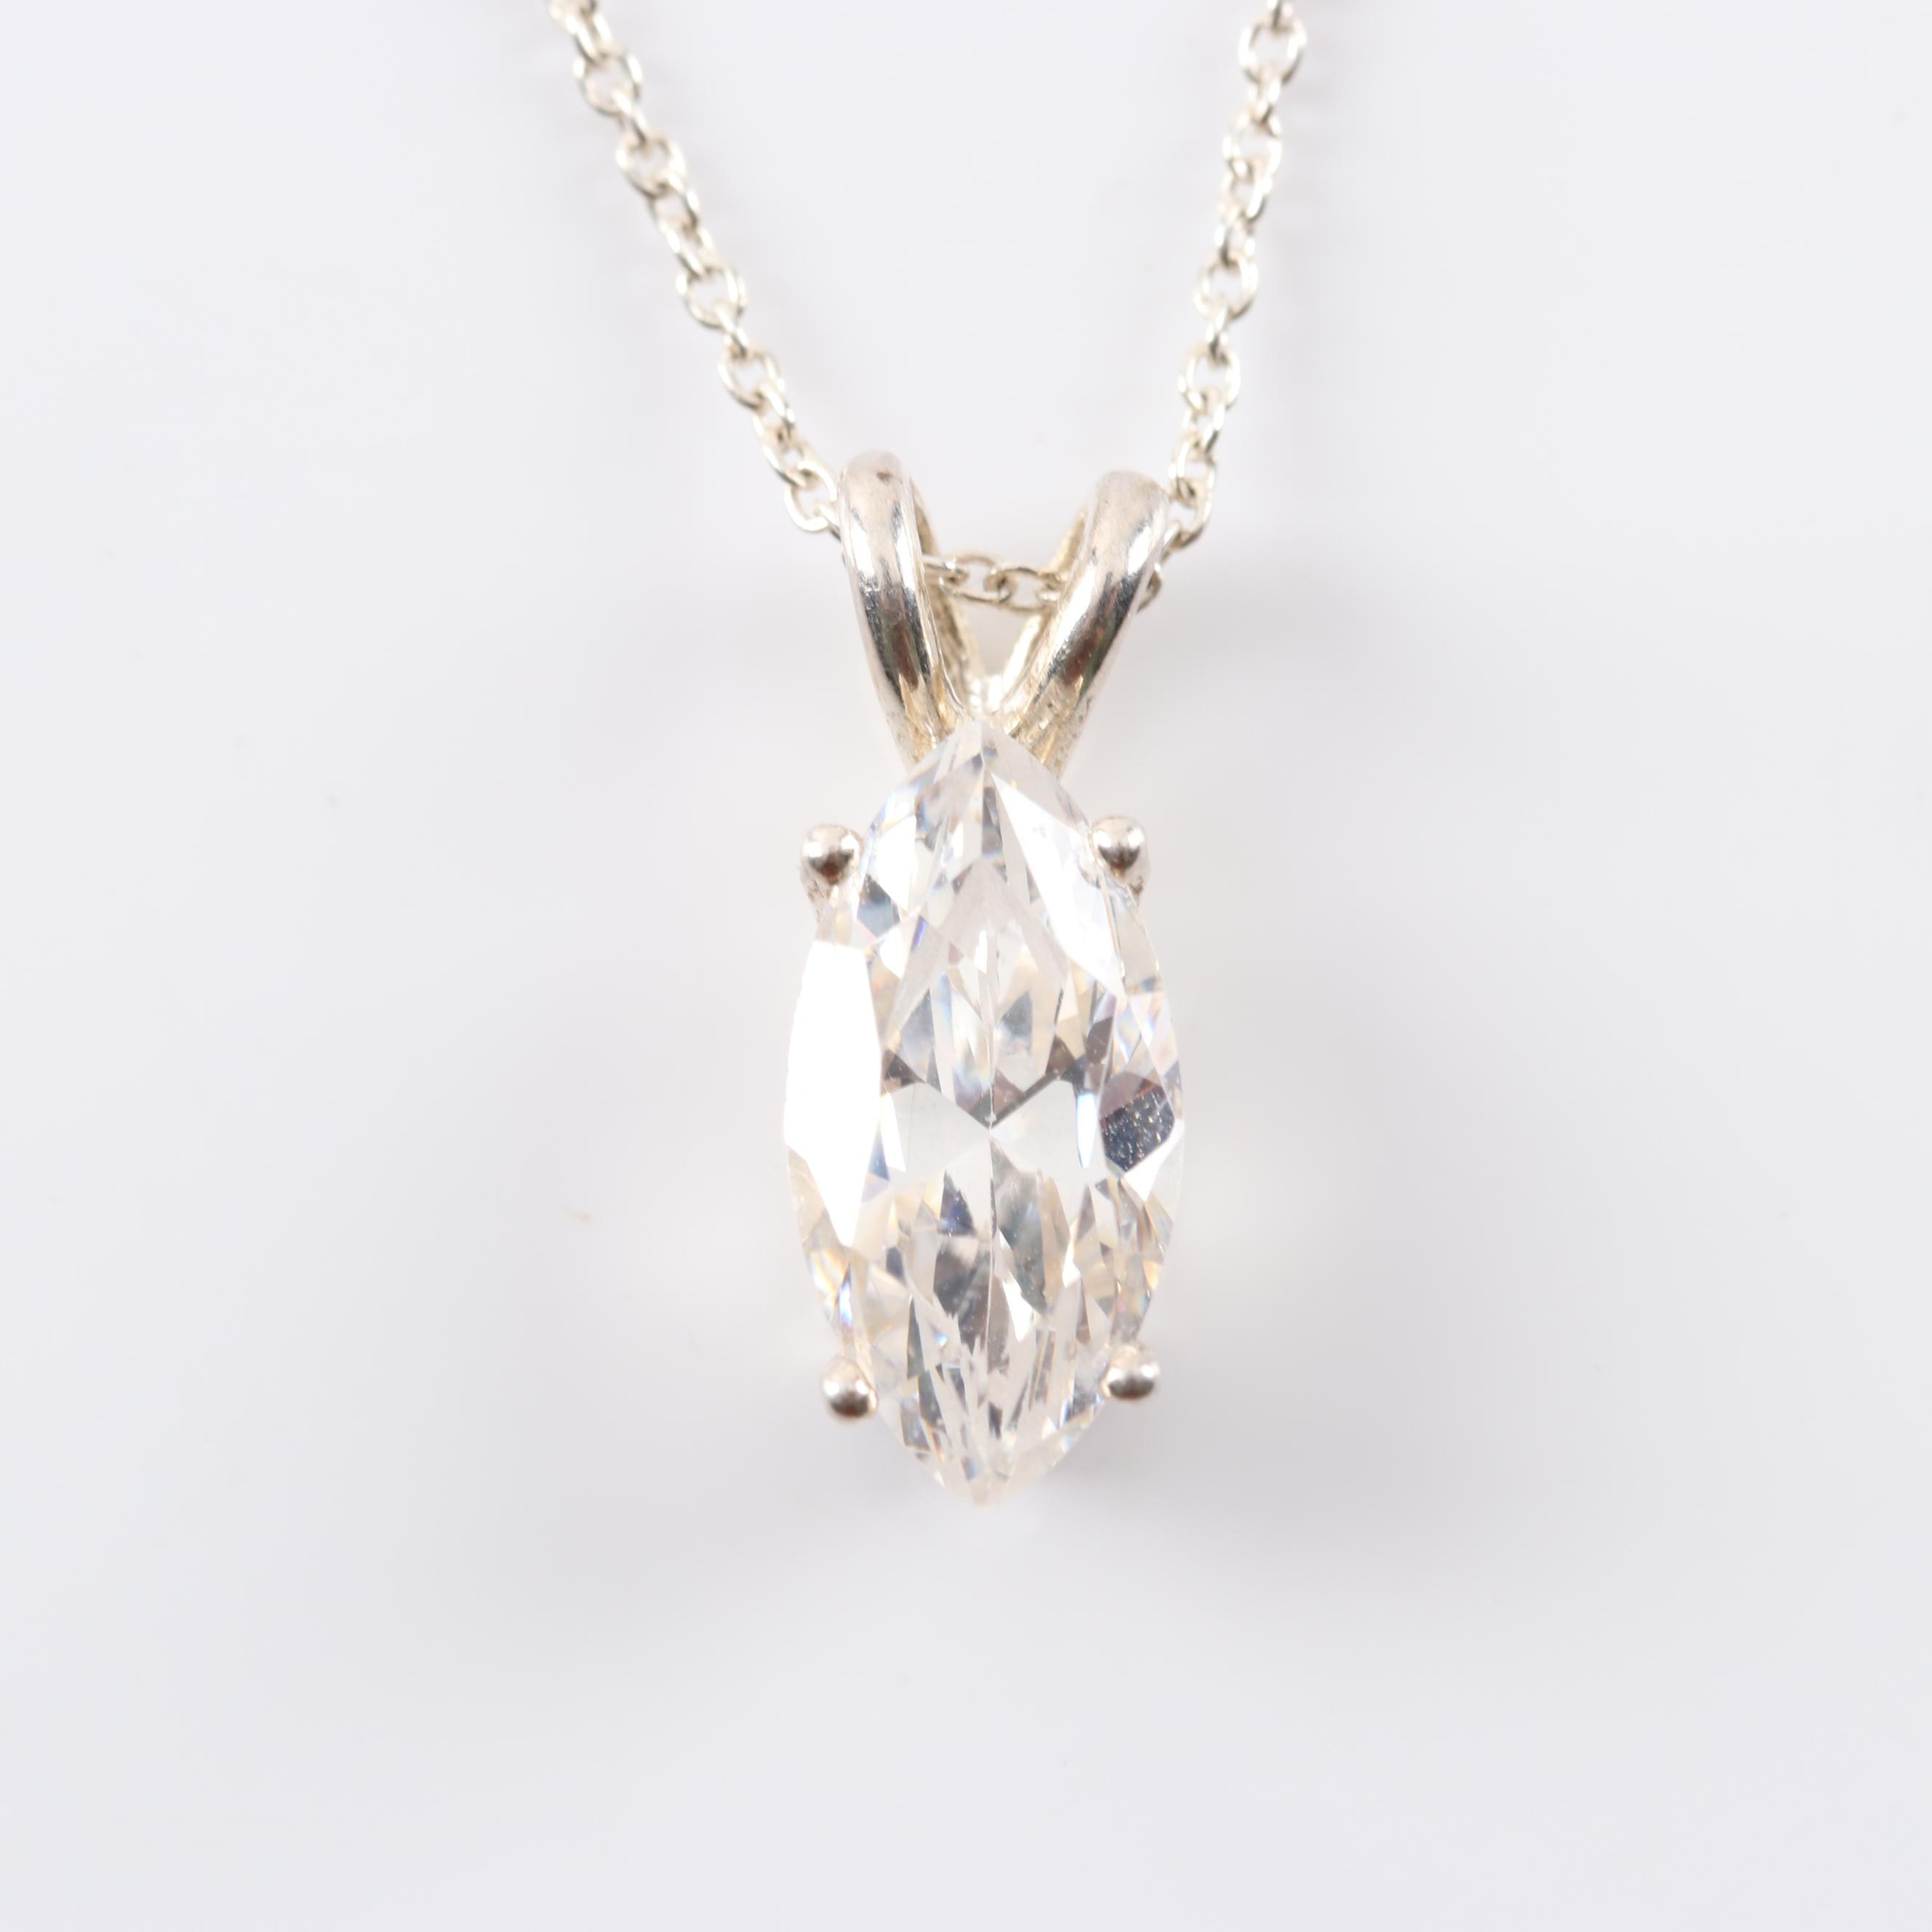 Italian Sterling Silver Marquise Cubic Zirconia Pendant Necklace